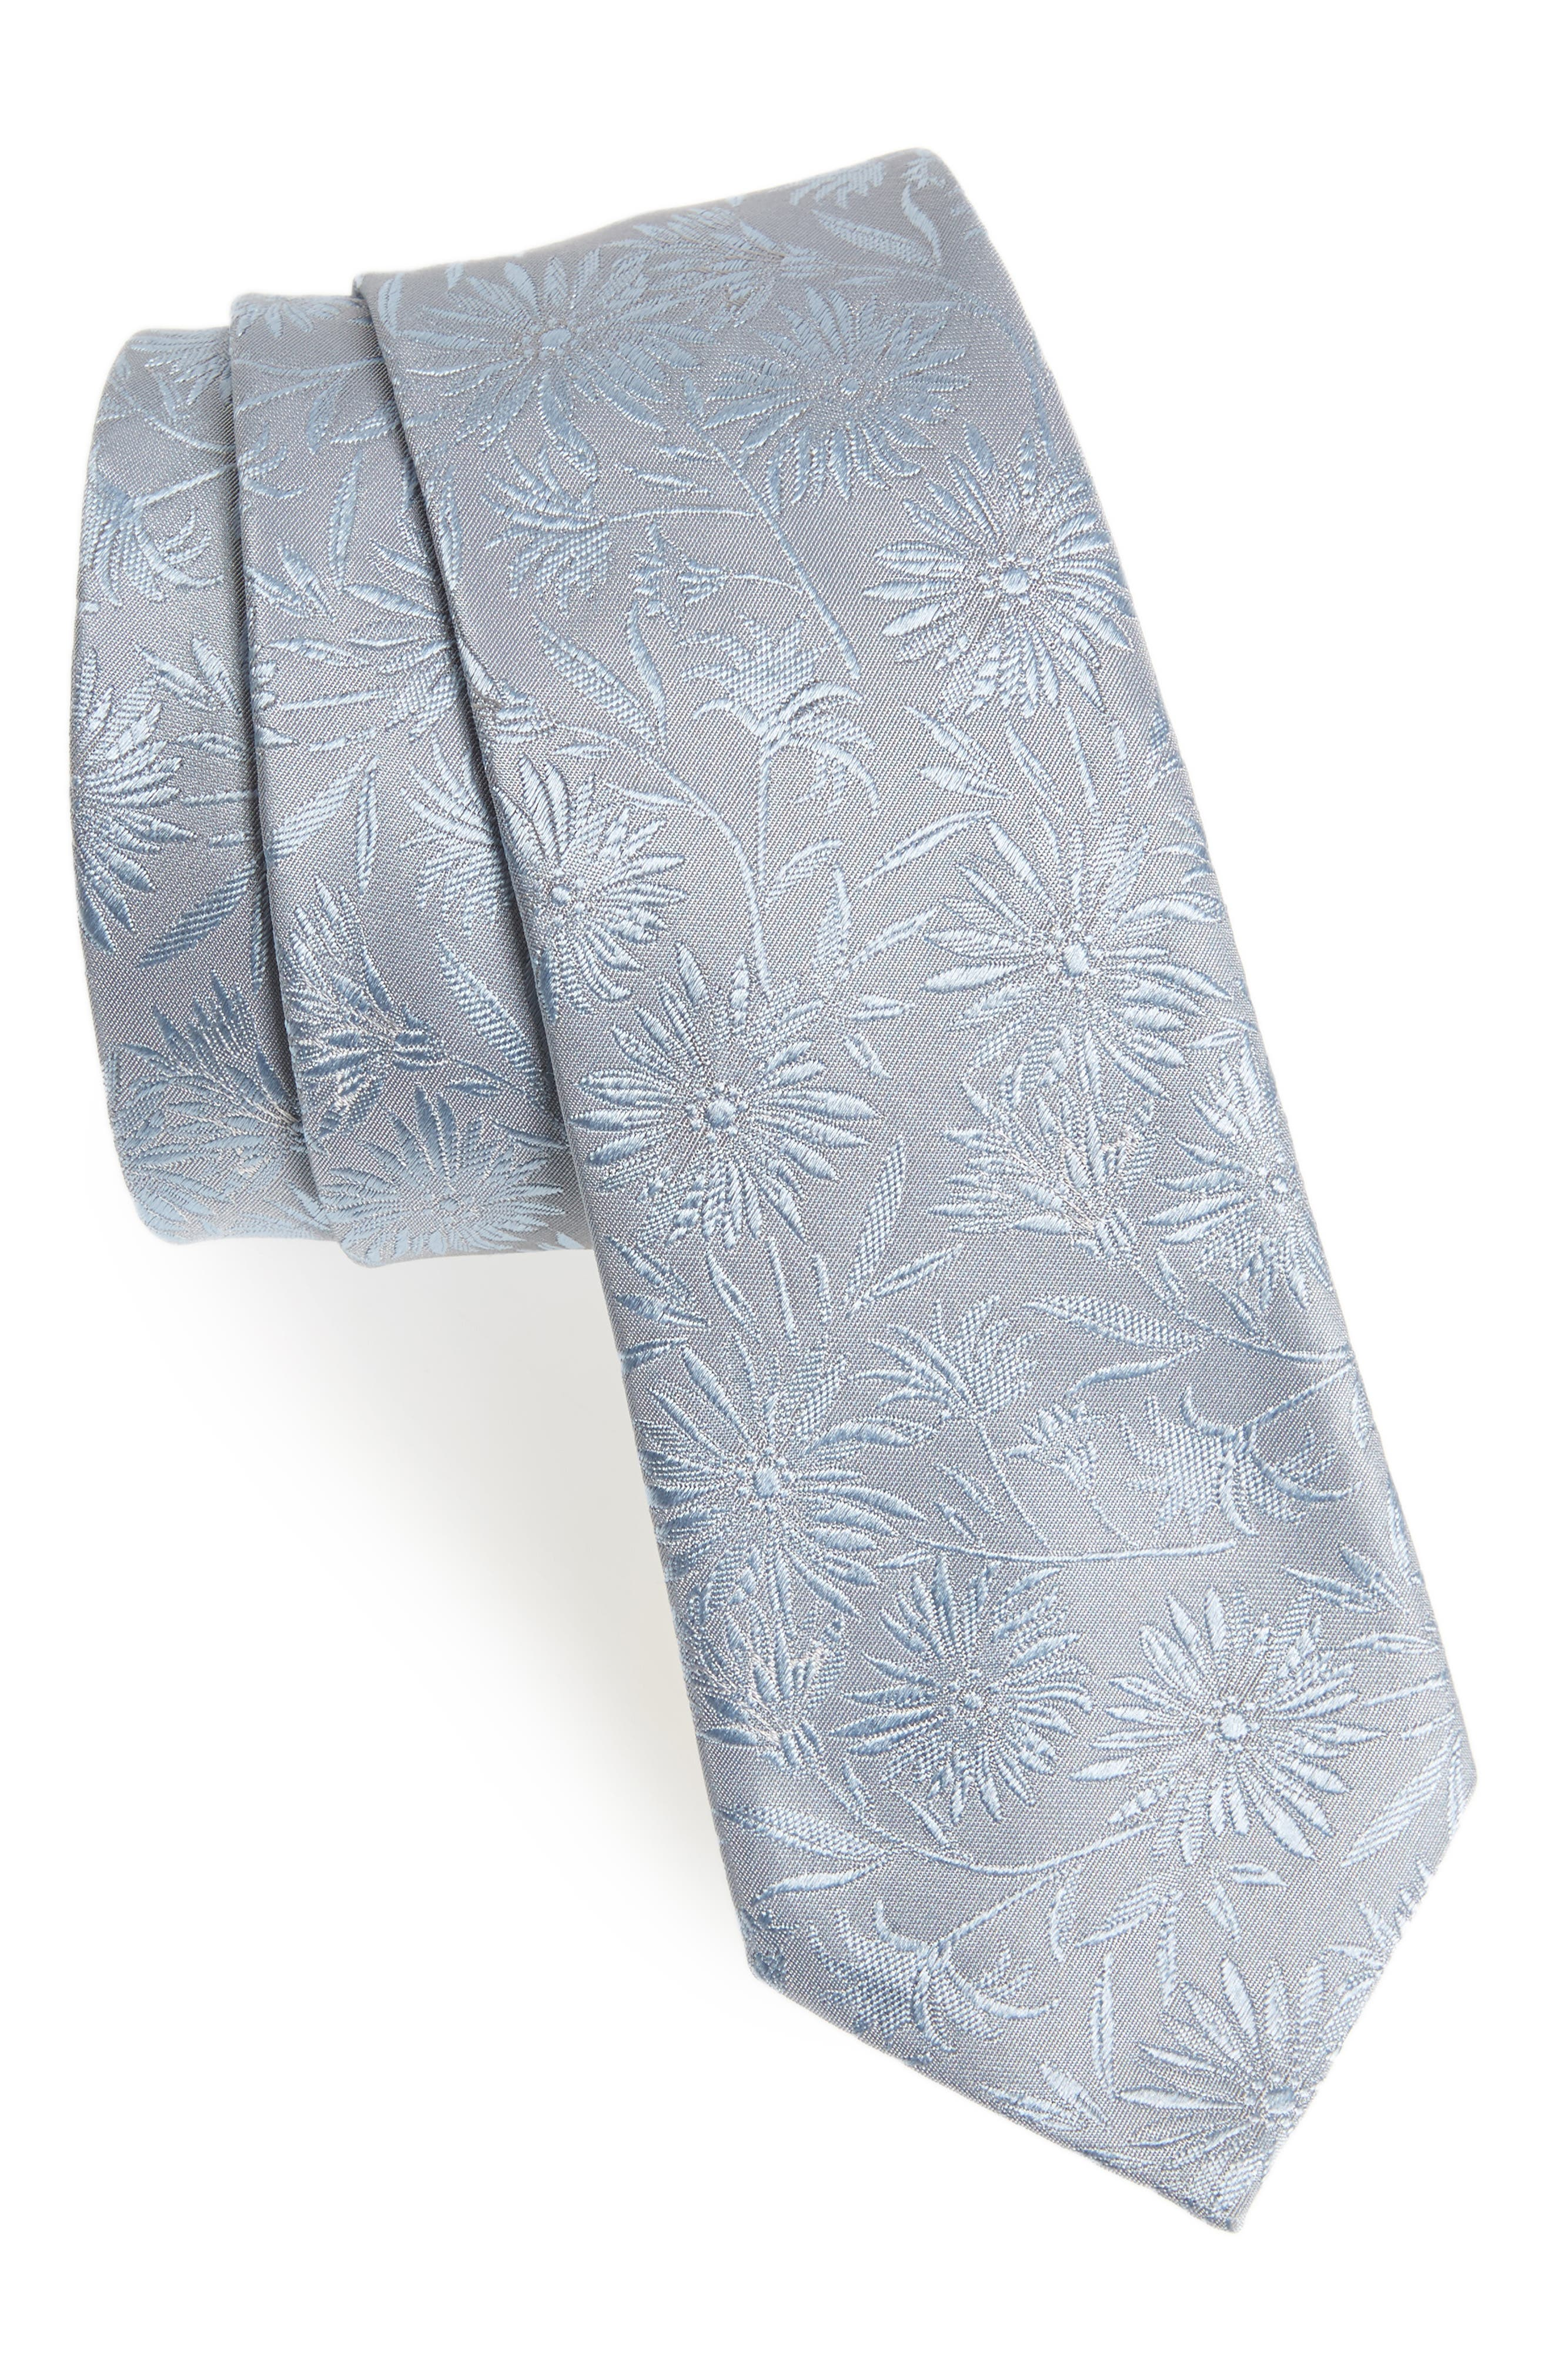 Tonal Floral Skinny Tie,                         Main,                         color, Light Blue